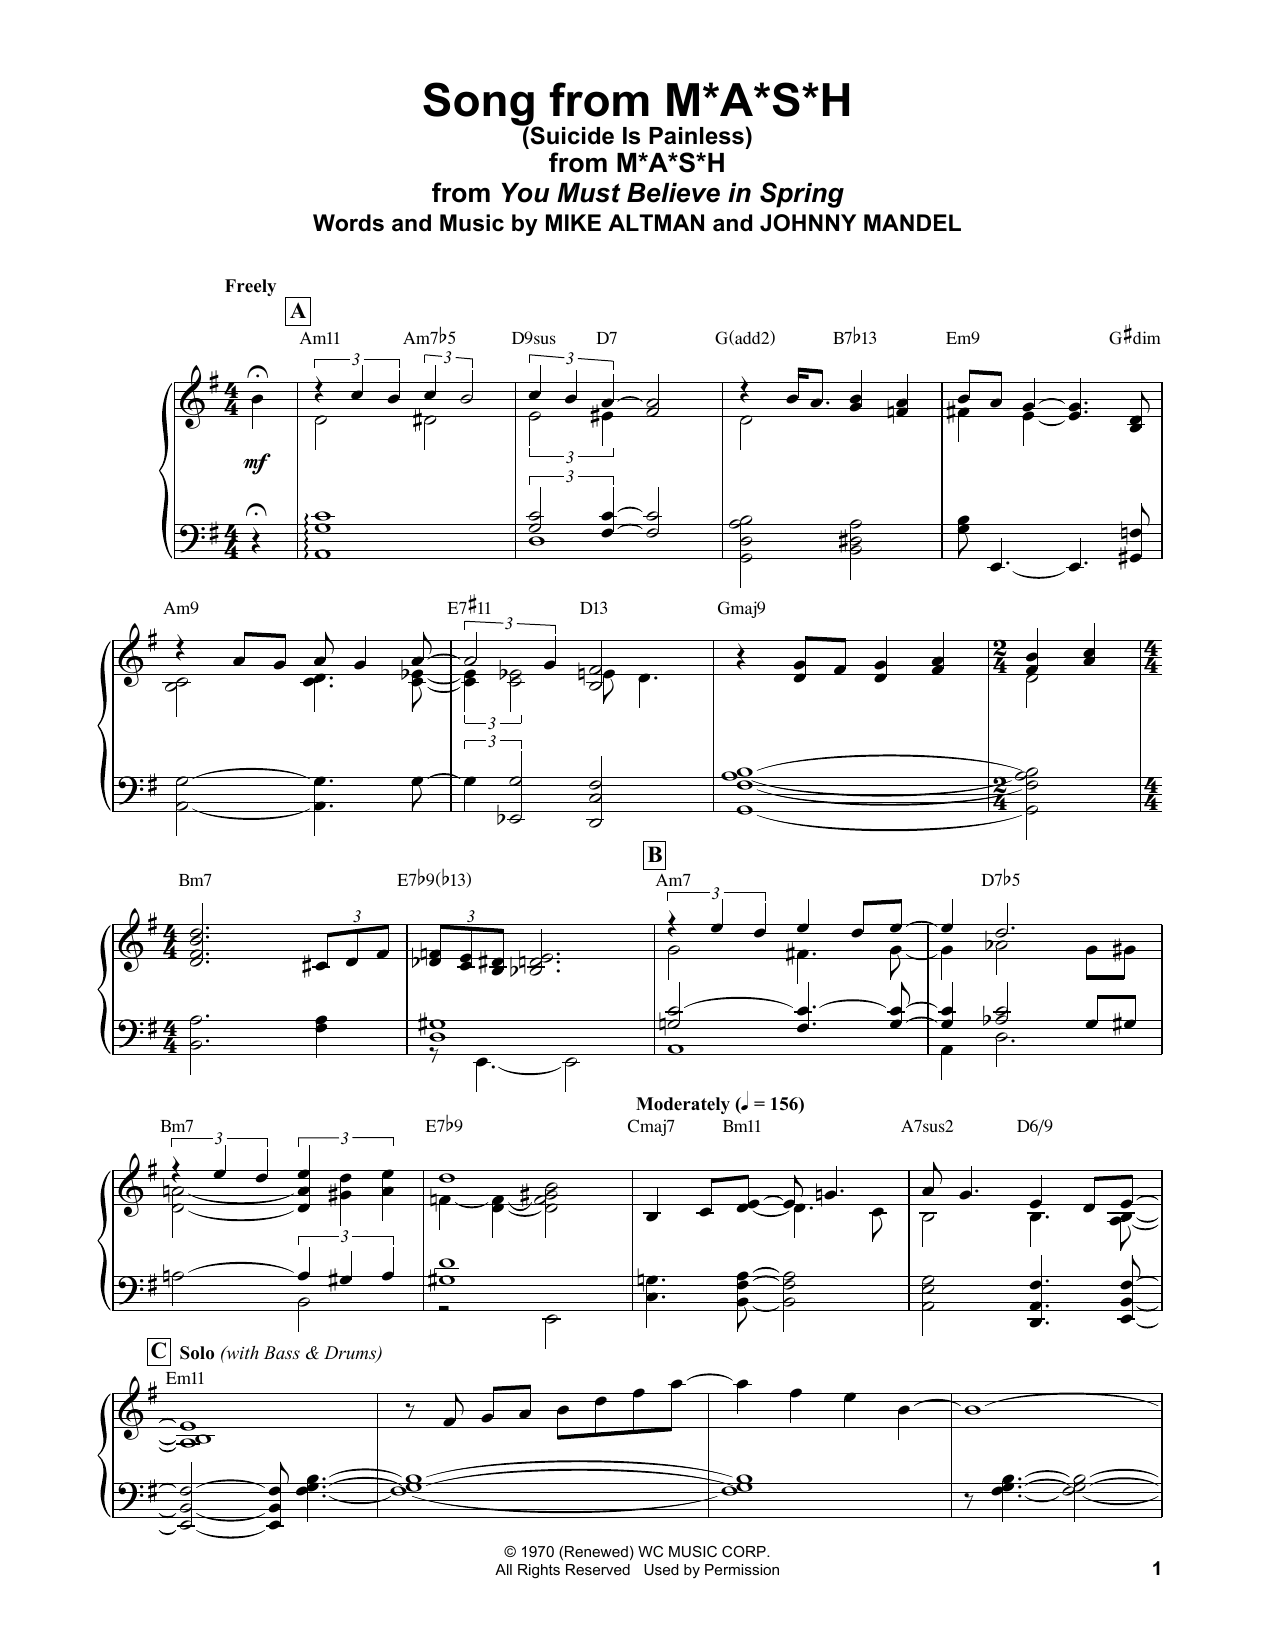 Bill Evans Song From M*A*S*H (Suicide Is Painless) sheet music notes and chords. Download Printable PDF.